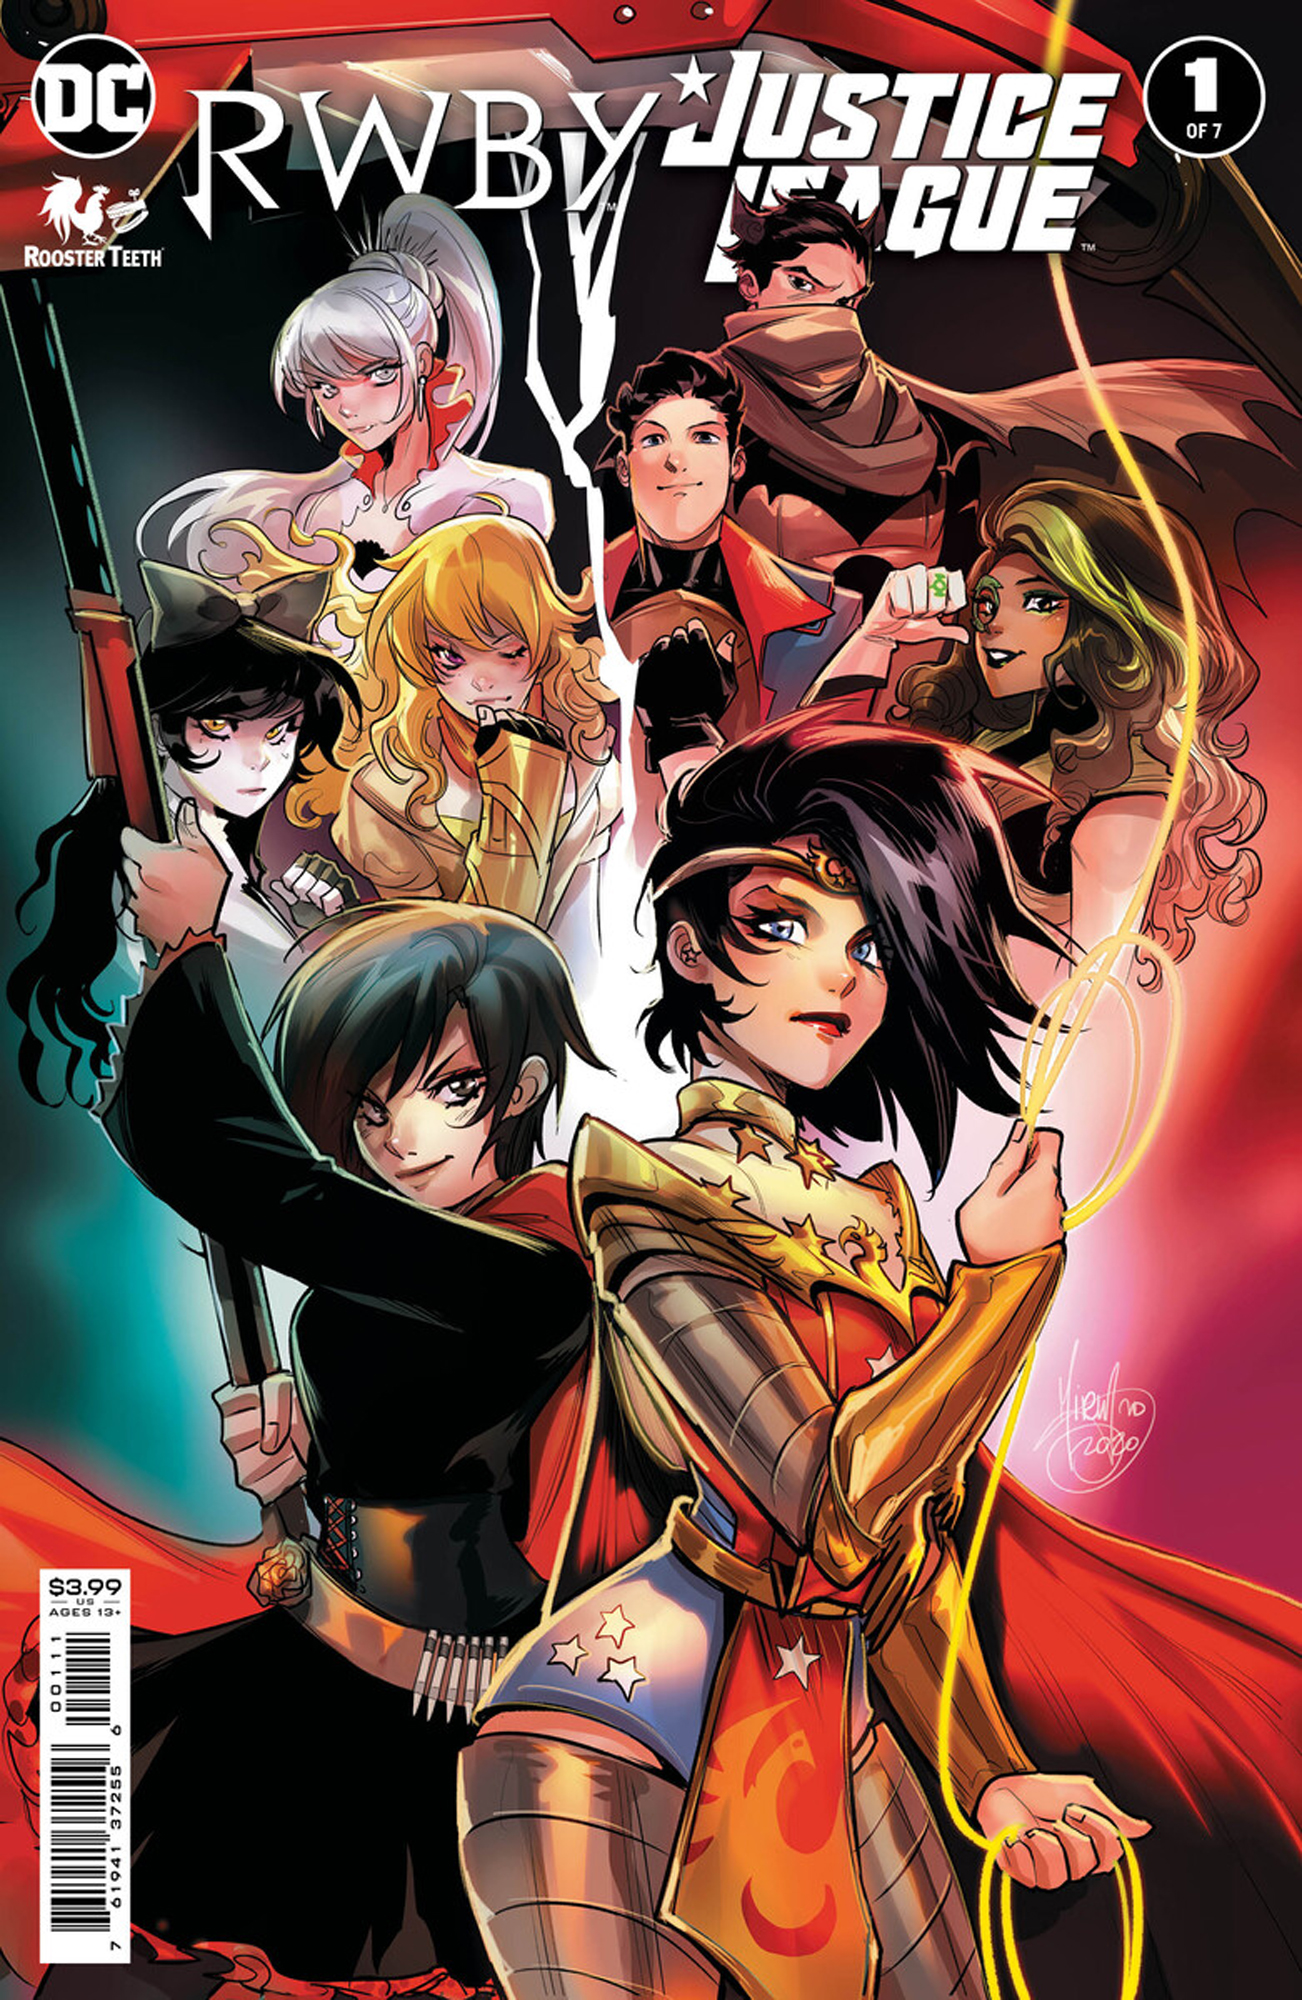 RWBY/Justice League #1 coming March 9, 2021 as a DC Digtal First